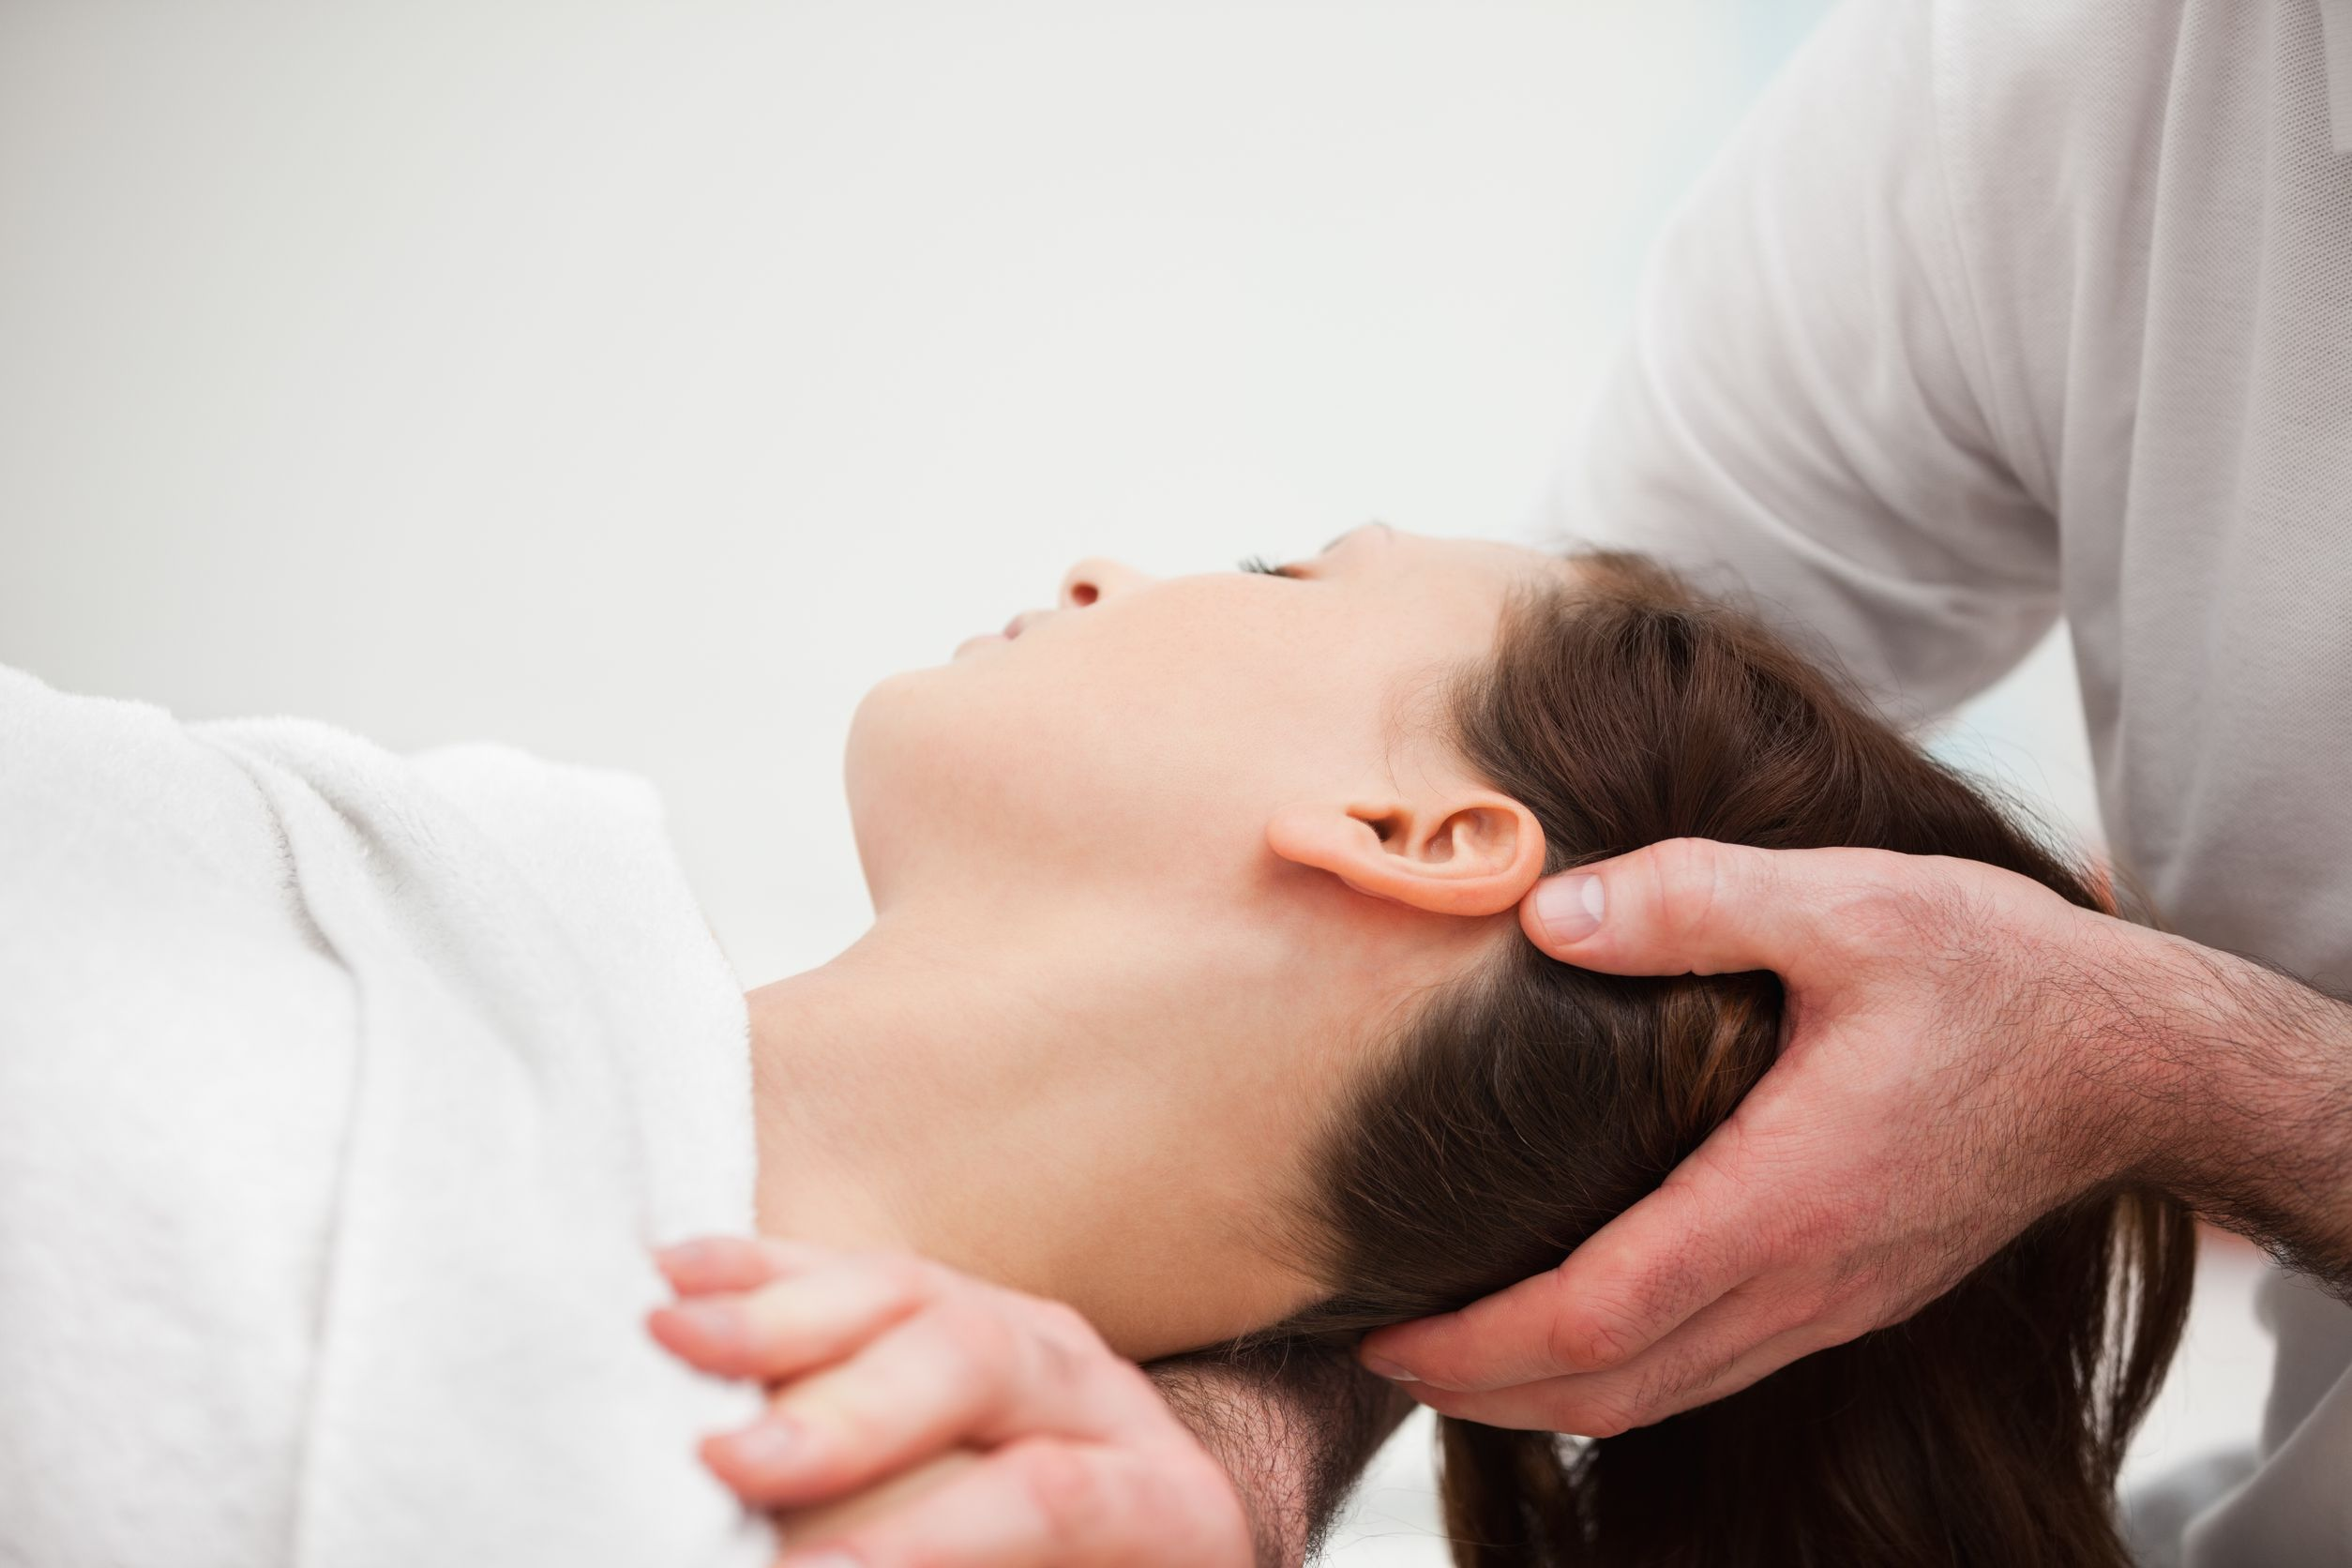 osteopathy procedure manipulating the neck of a woman